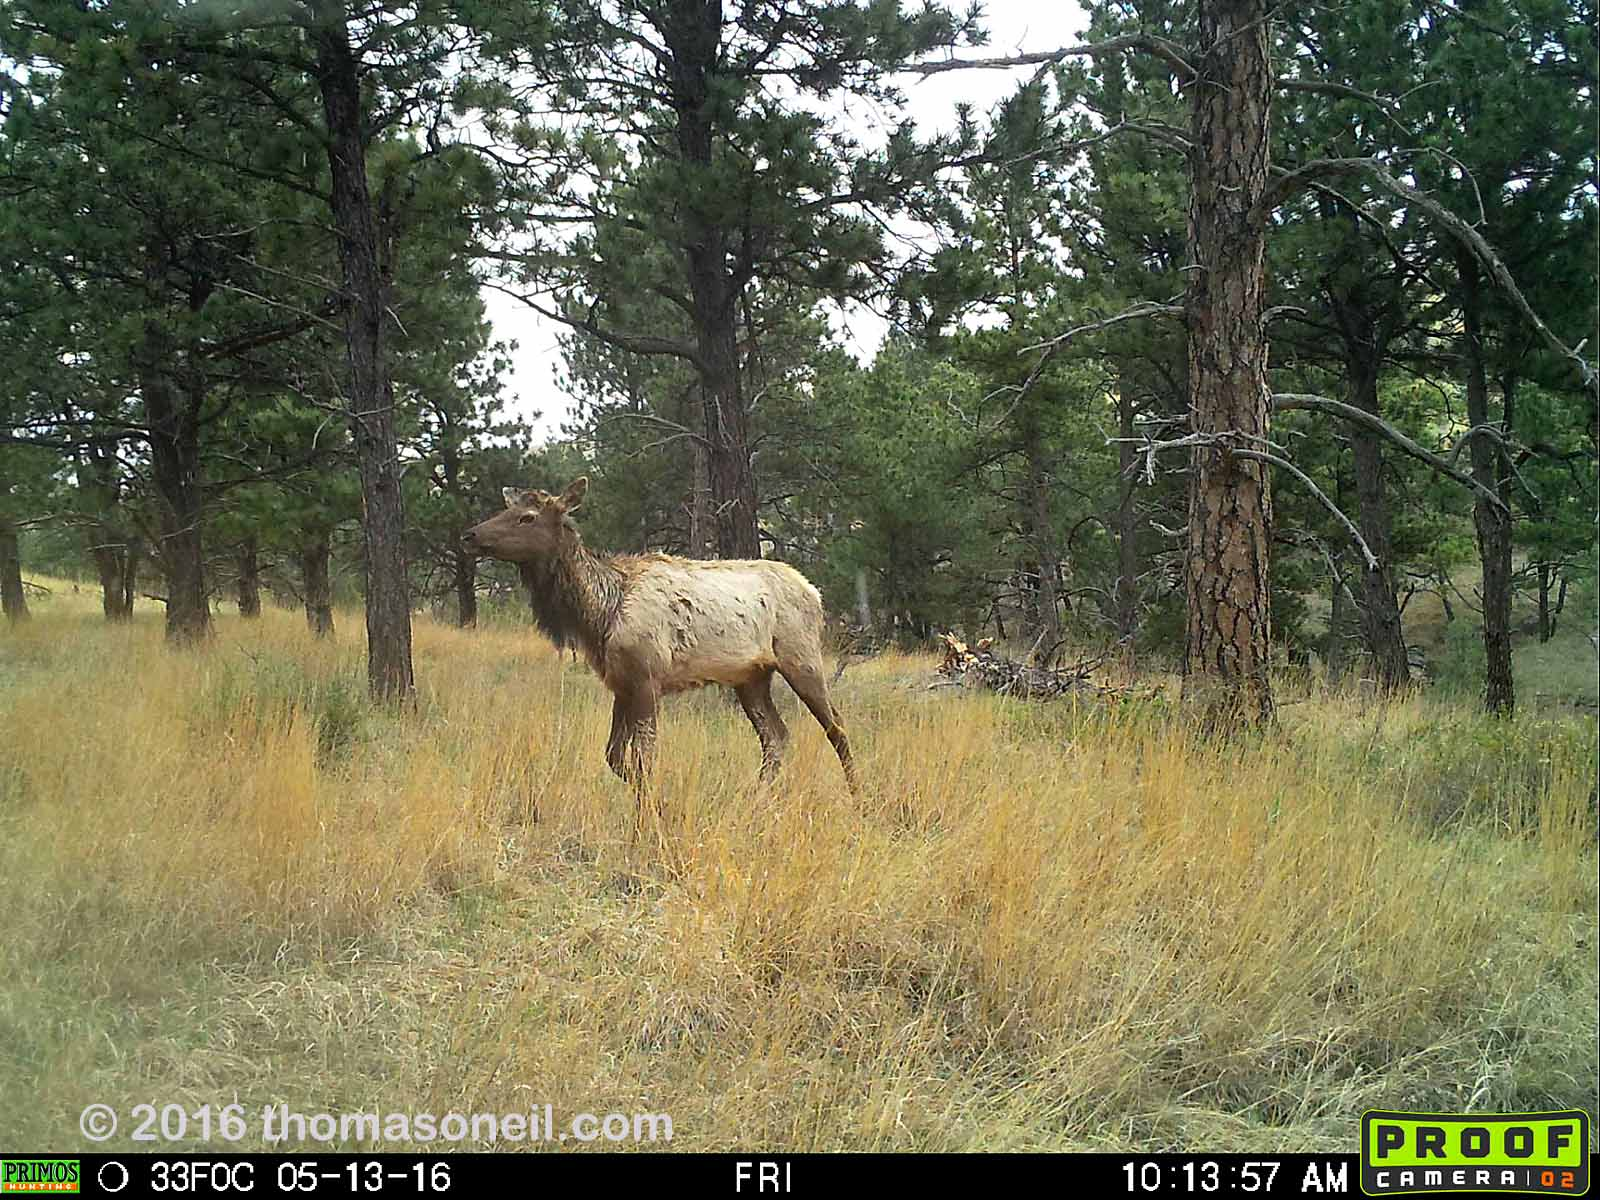 Elk on Primos trailcam, Wind Cave National Park, May 13, 2016.  Compare to previous image on Moultrie trailcam.